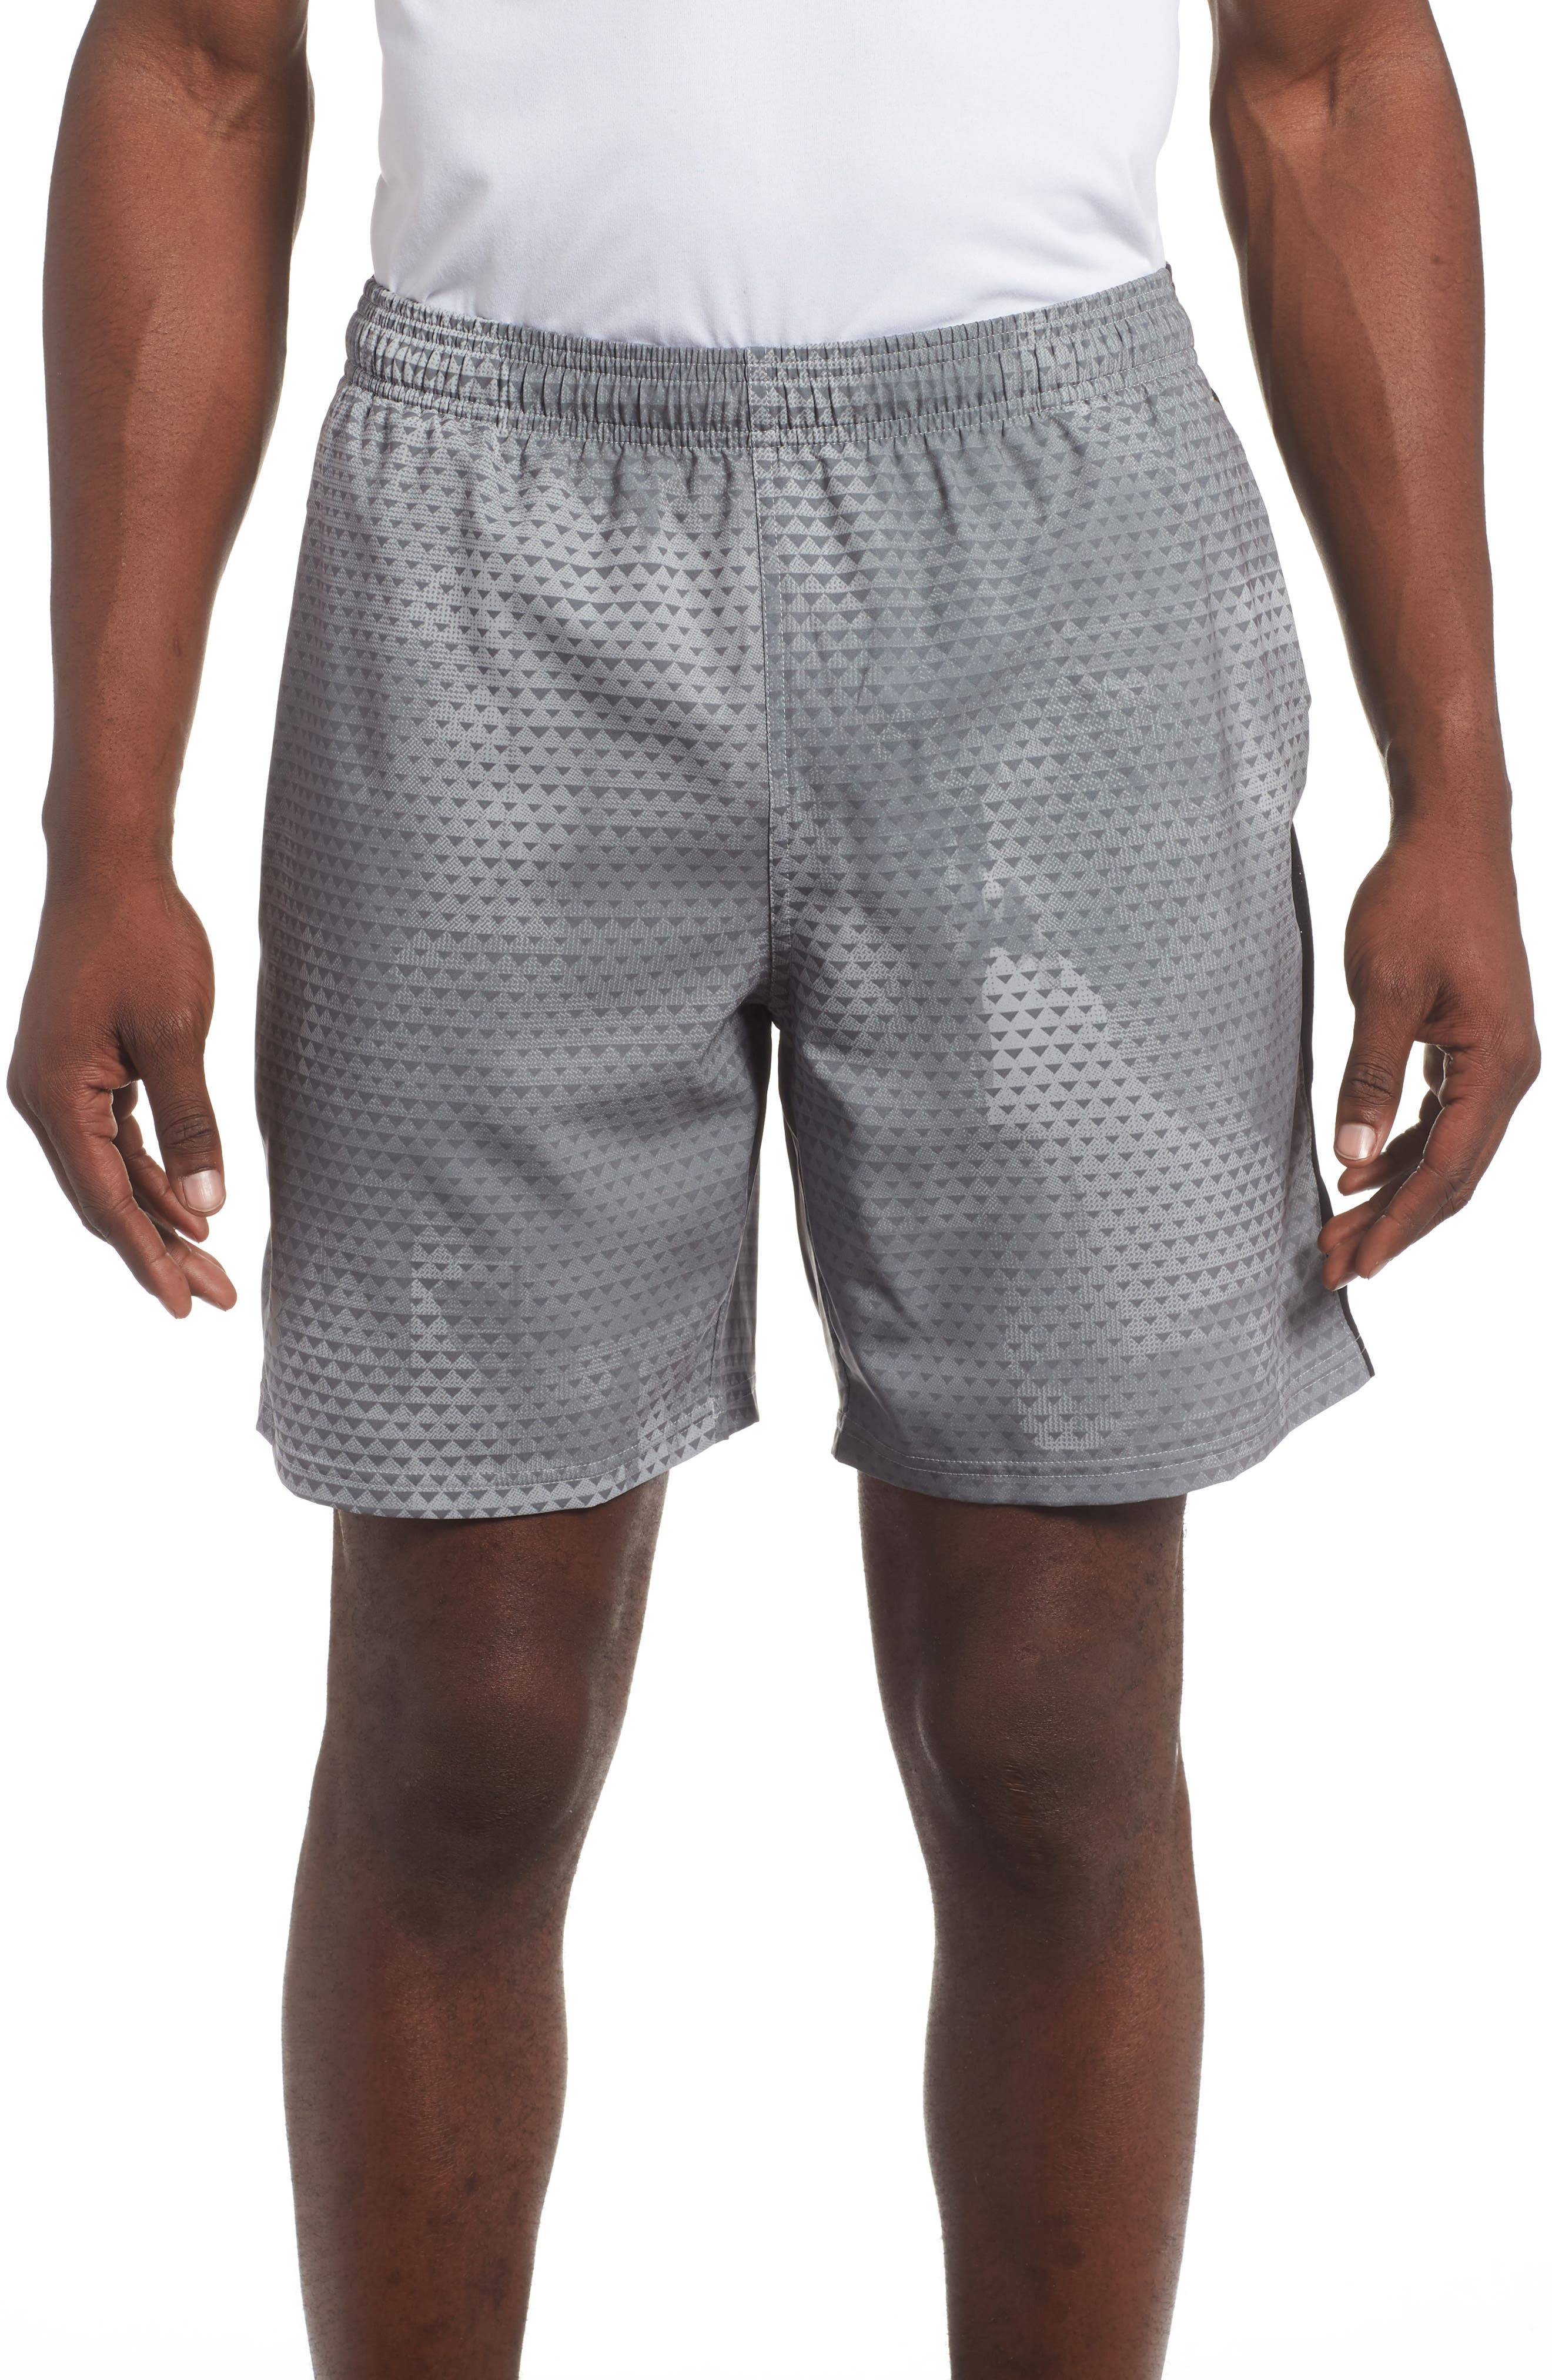 Alternate Image 1 Selected - Under Armour Launch Running Shorts